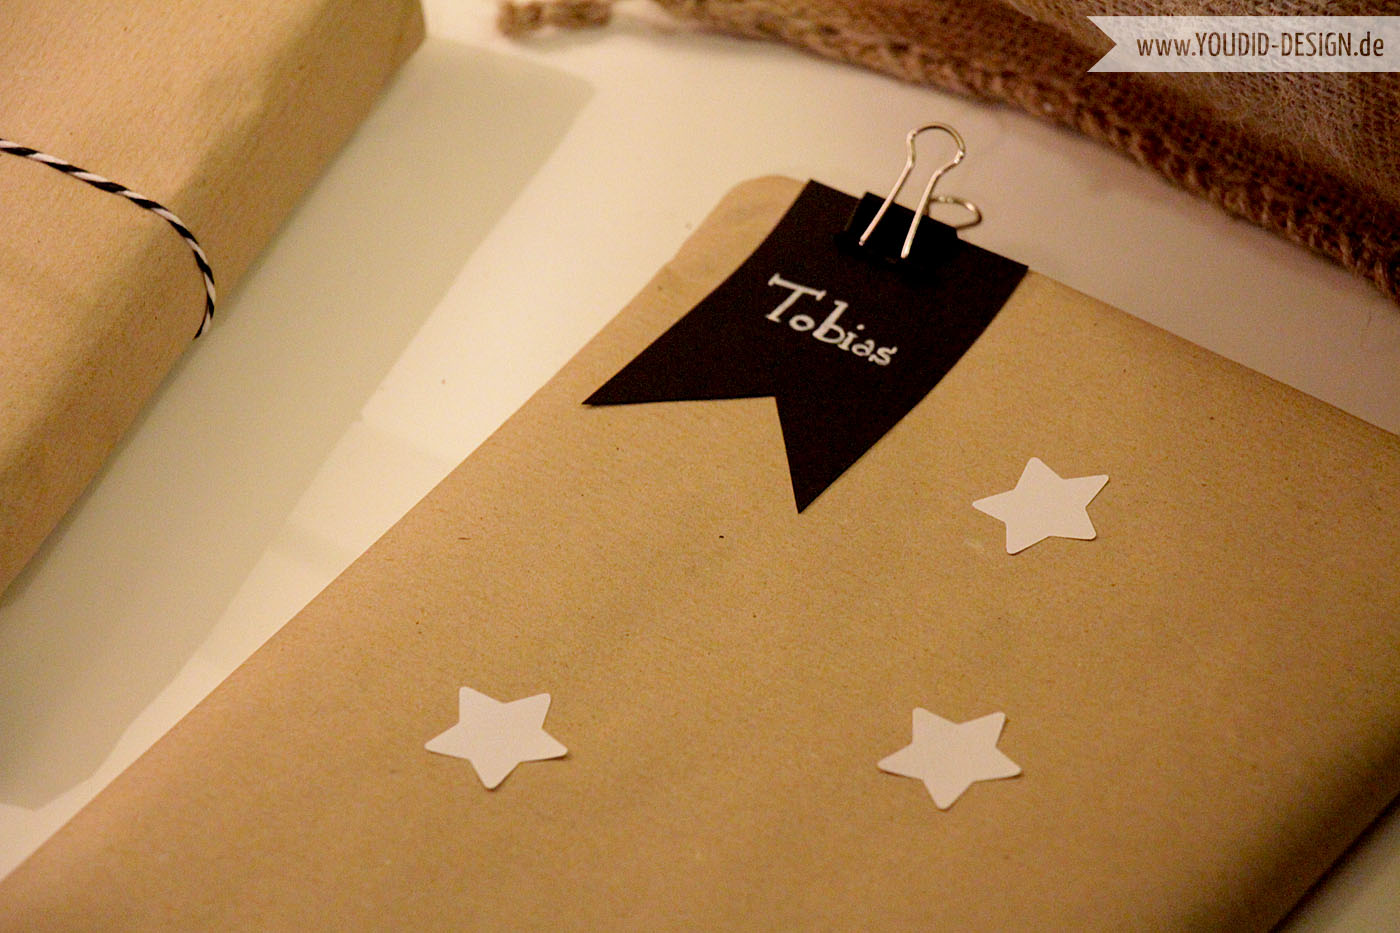 Gift Wrapping Star | www.youdid-design.de